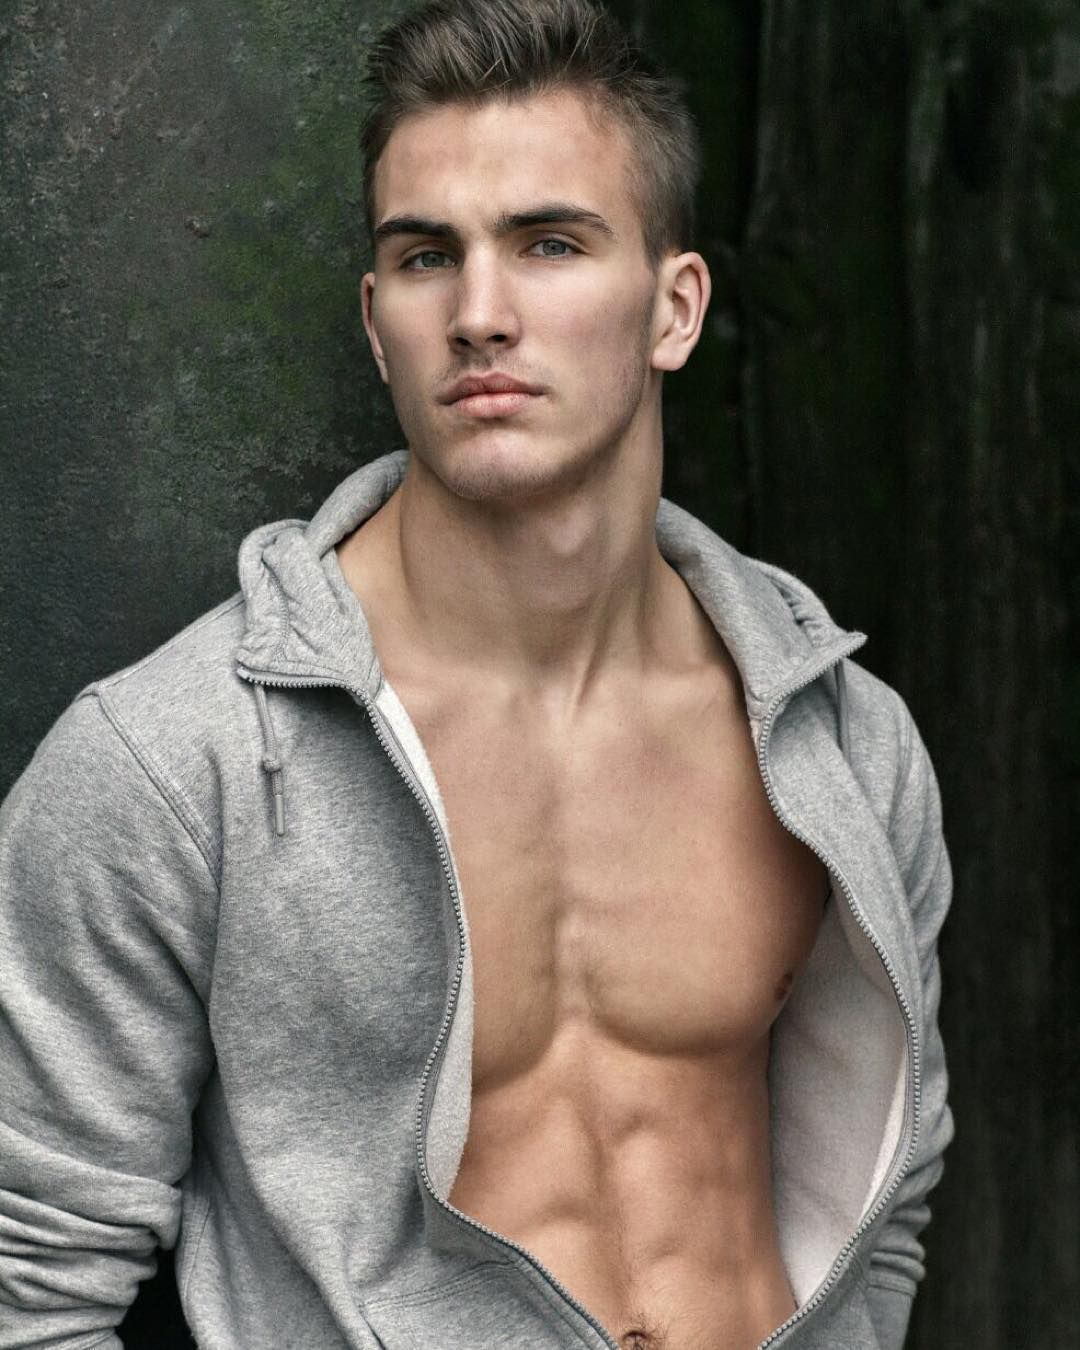 Nathan Brown Fitness Model And Personal Trainer The